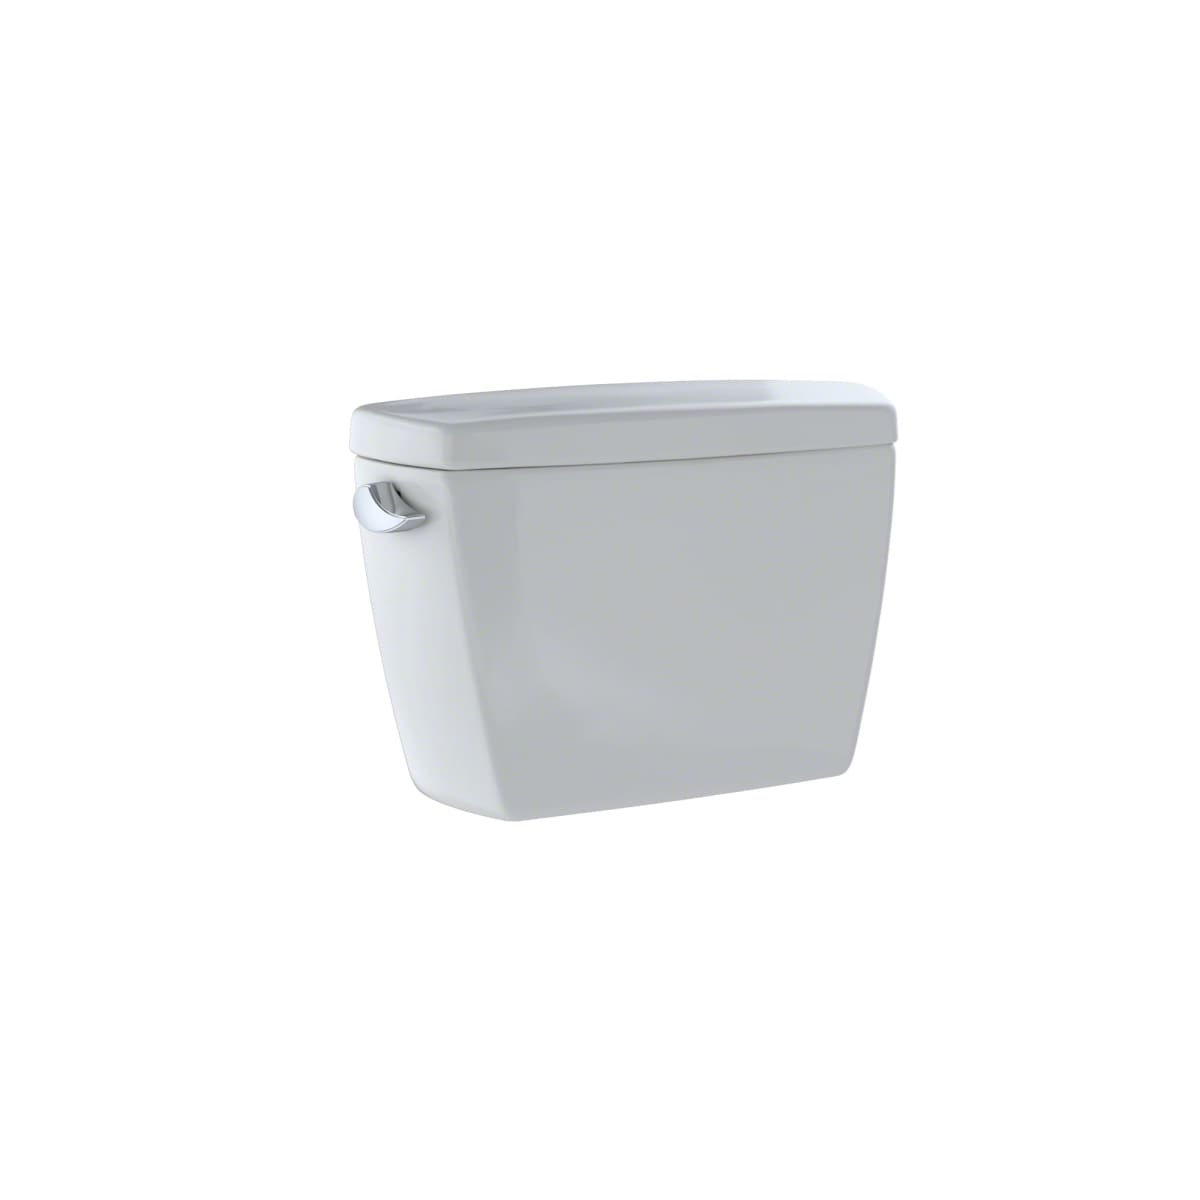 Toto ST743S#01 Cotton Toilet Tank from the Drake Collection - Faucet.com